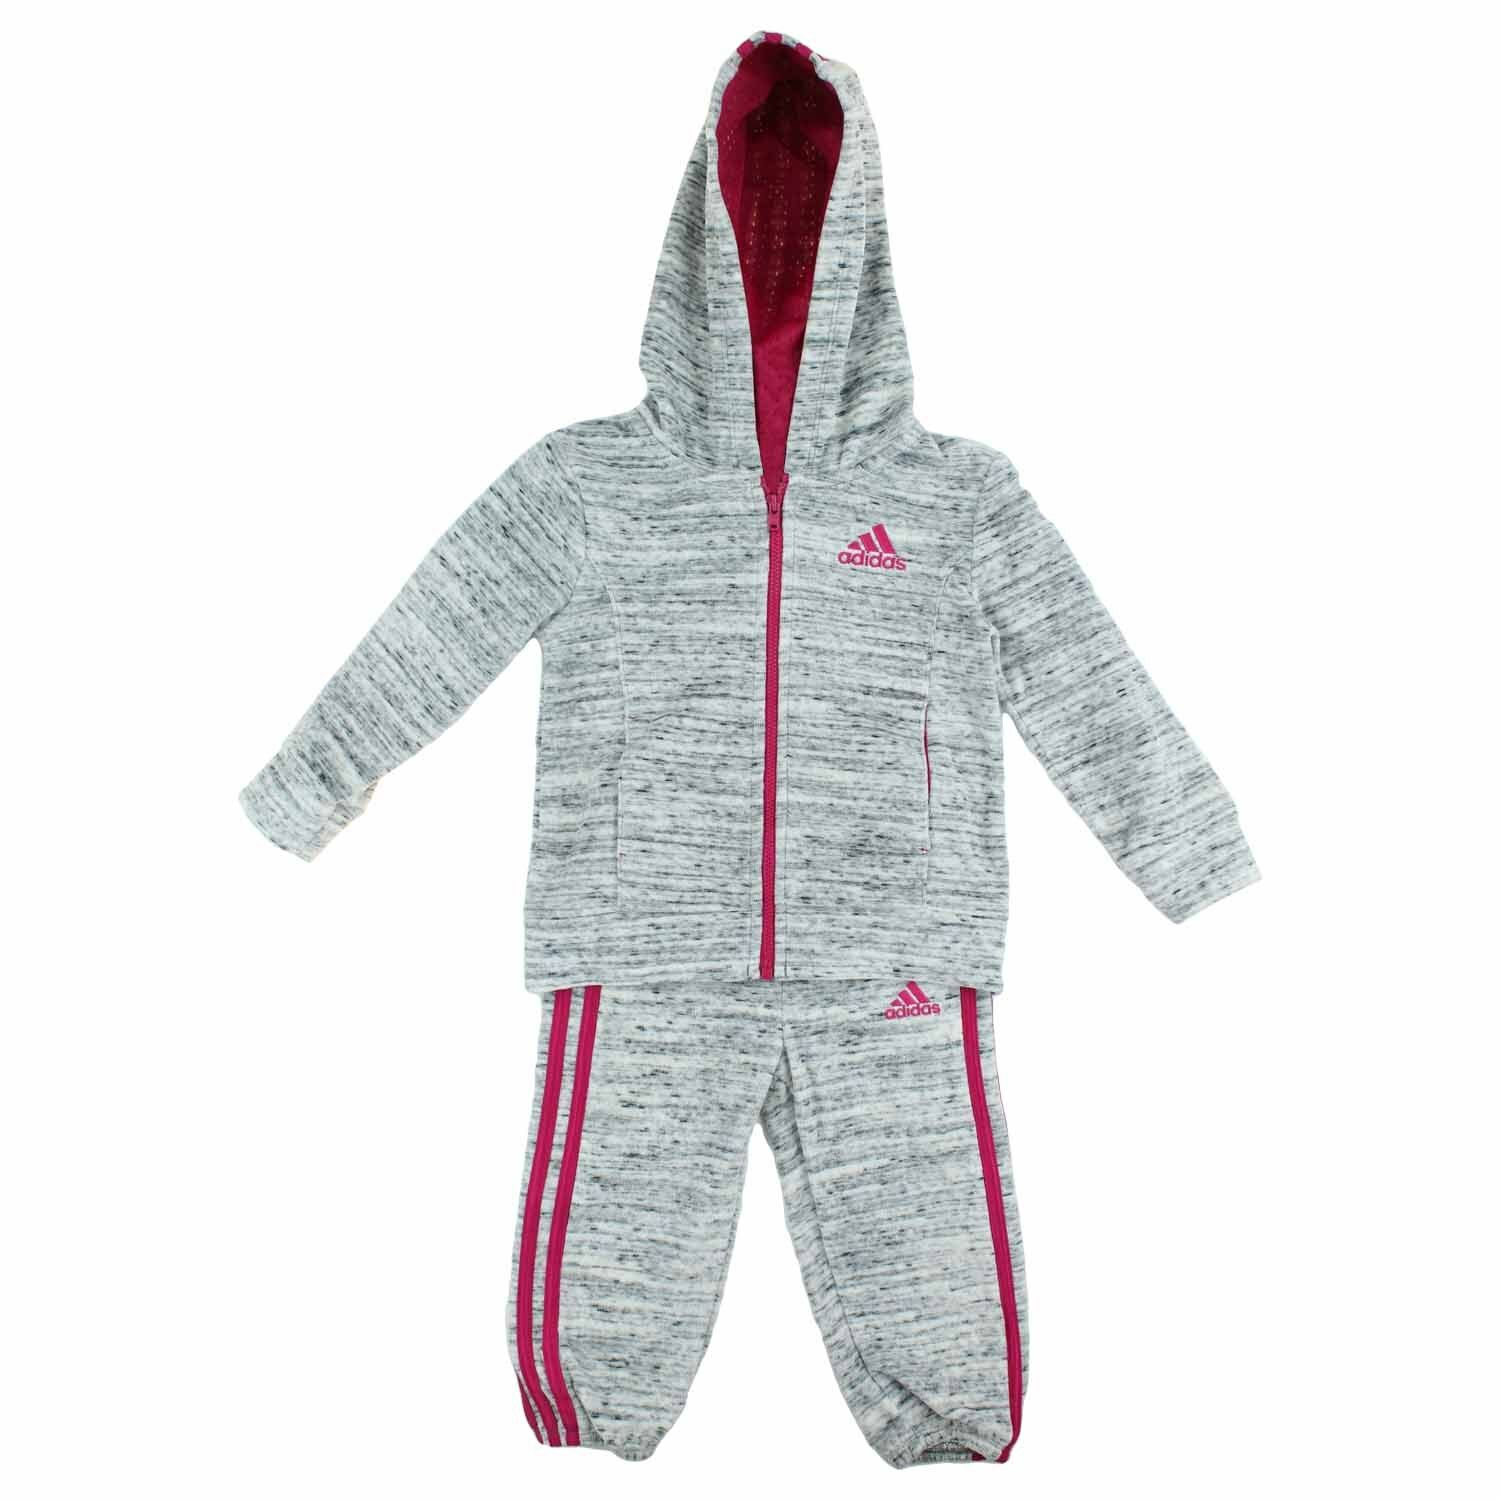 Adidas Girls 2 Piece Jacket Pants Athletic Tracksuit Set - S